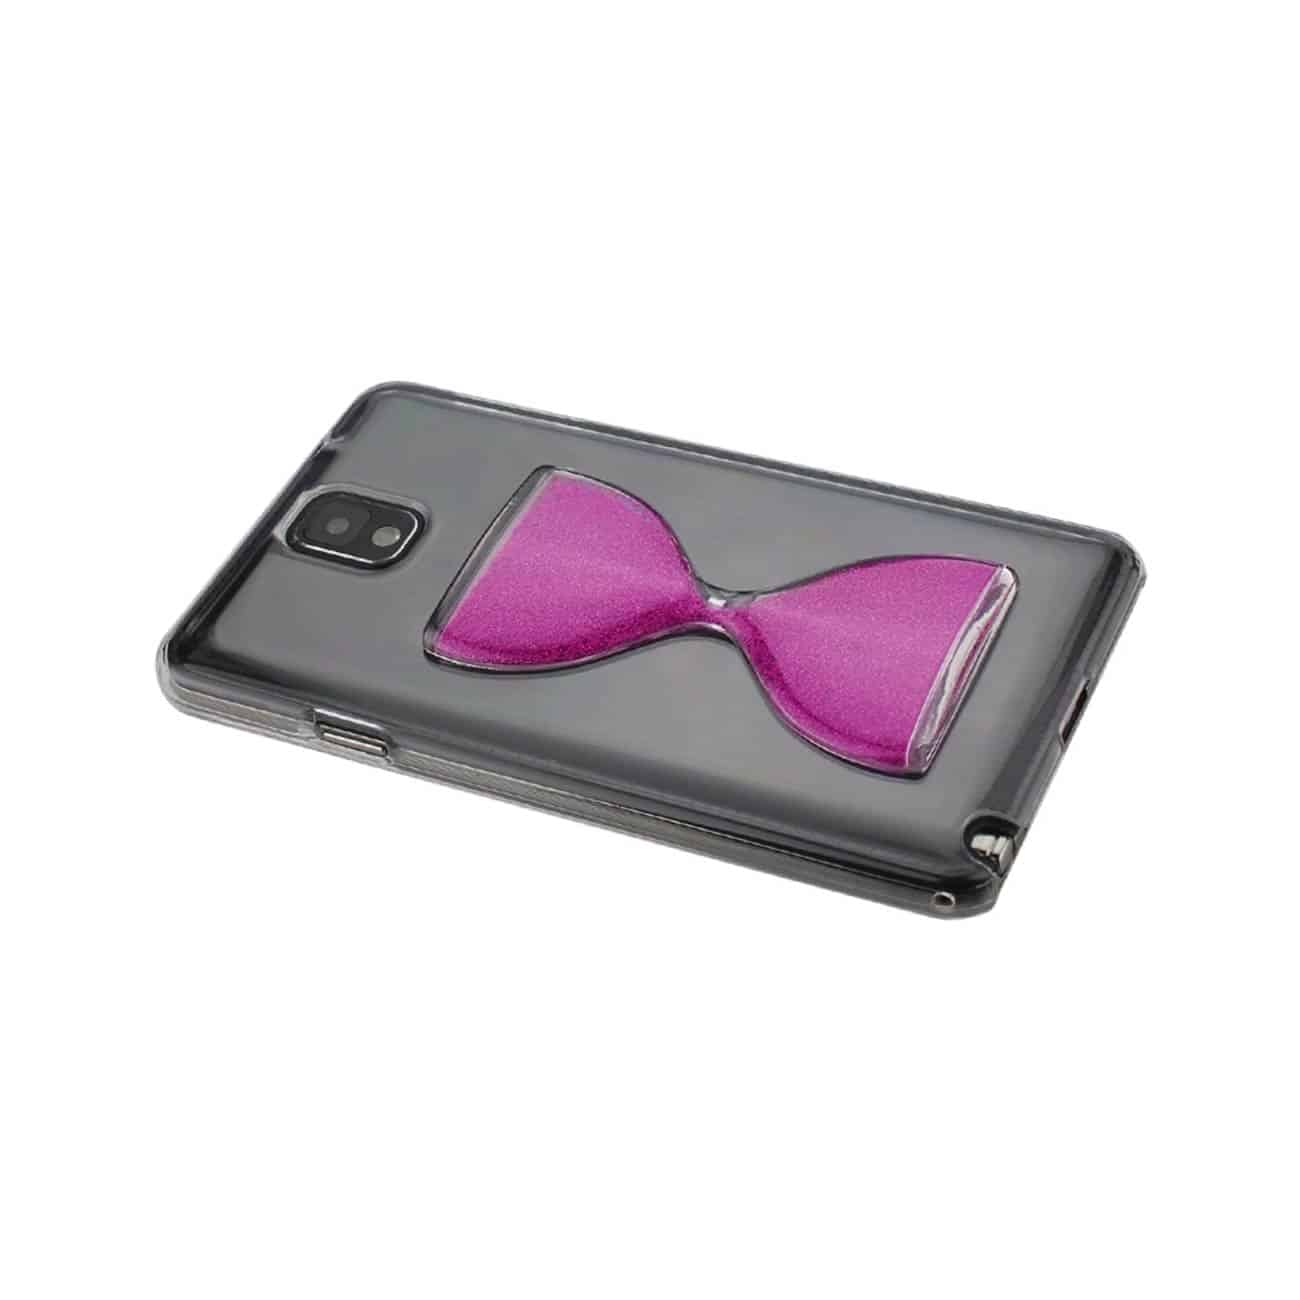 SAMSUNG GALAXY NOTE 3 3D SAND CLOCK CLEAR CASE IN HOT PINK